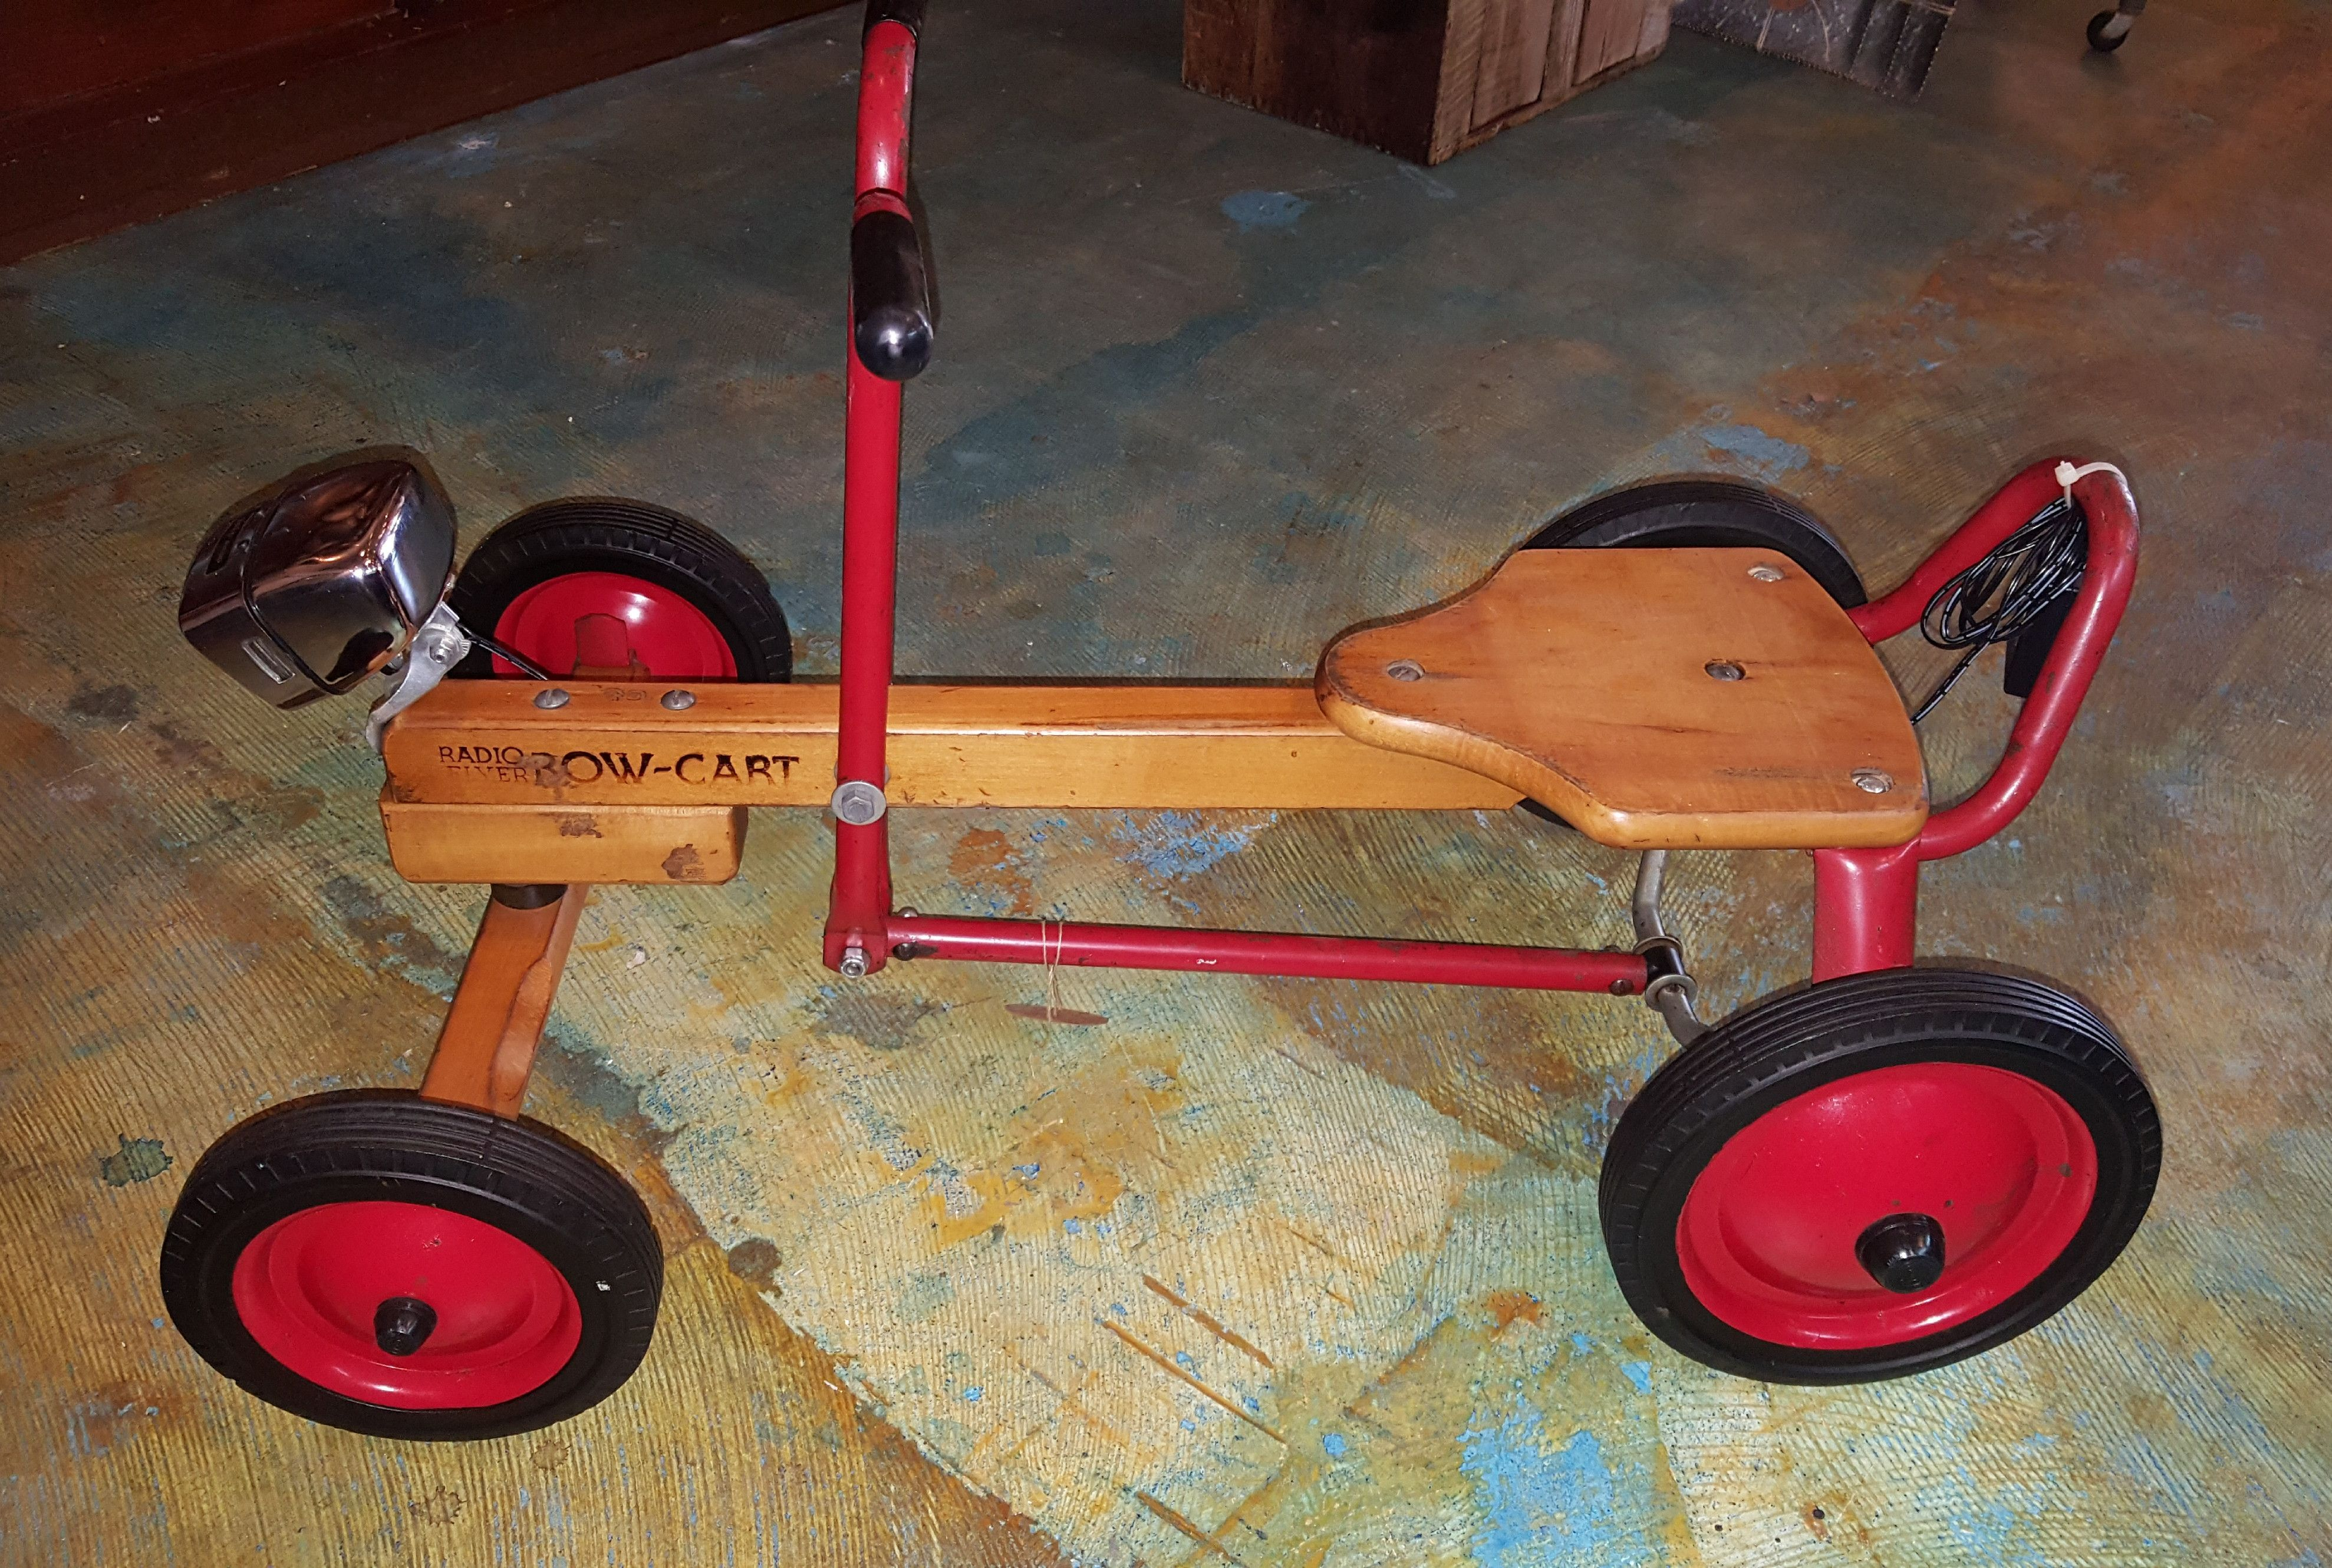 Radio Flyer Row Cart Sit On Ride With Headlight 1950s Products